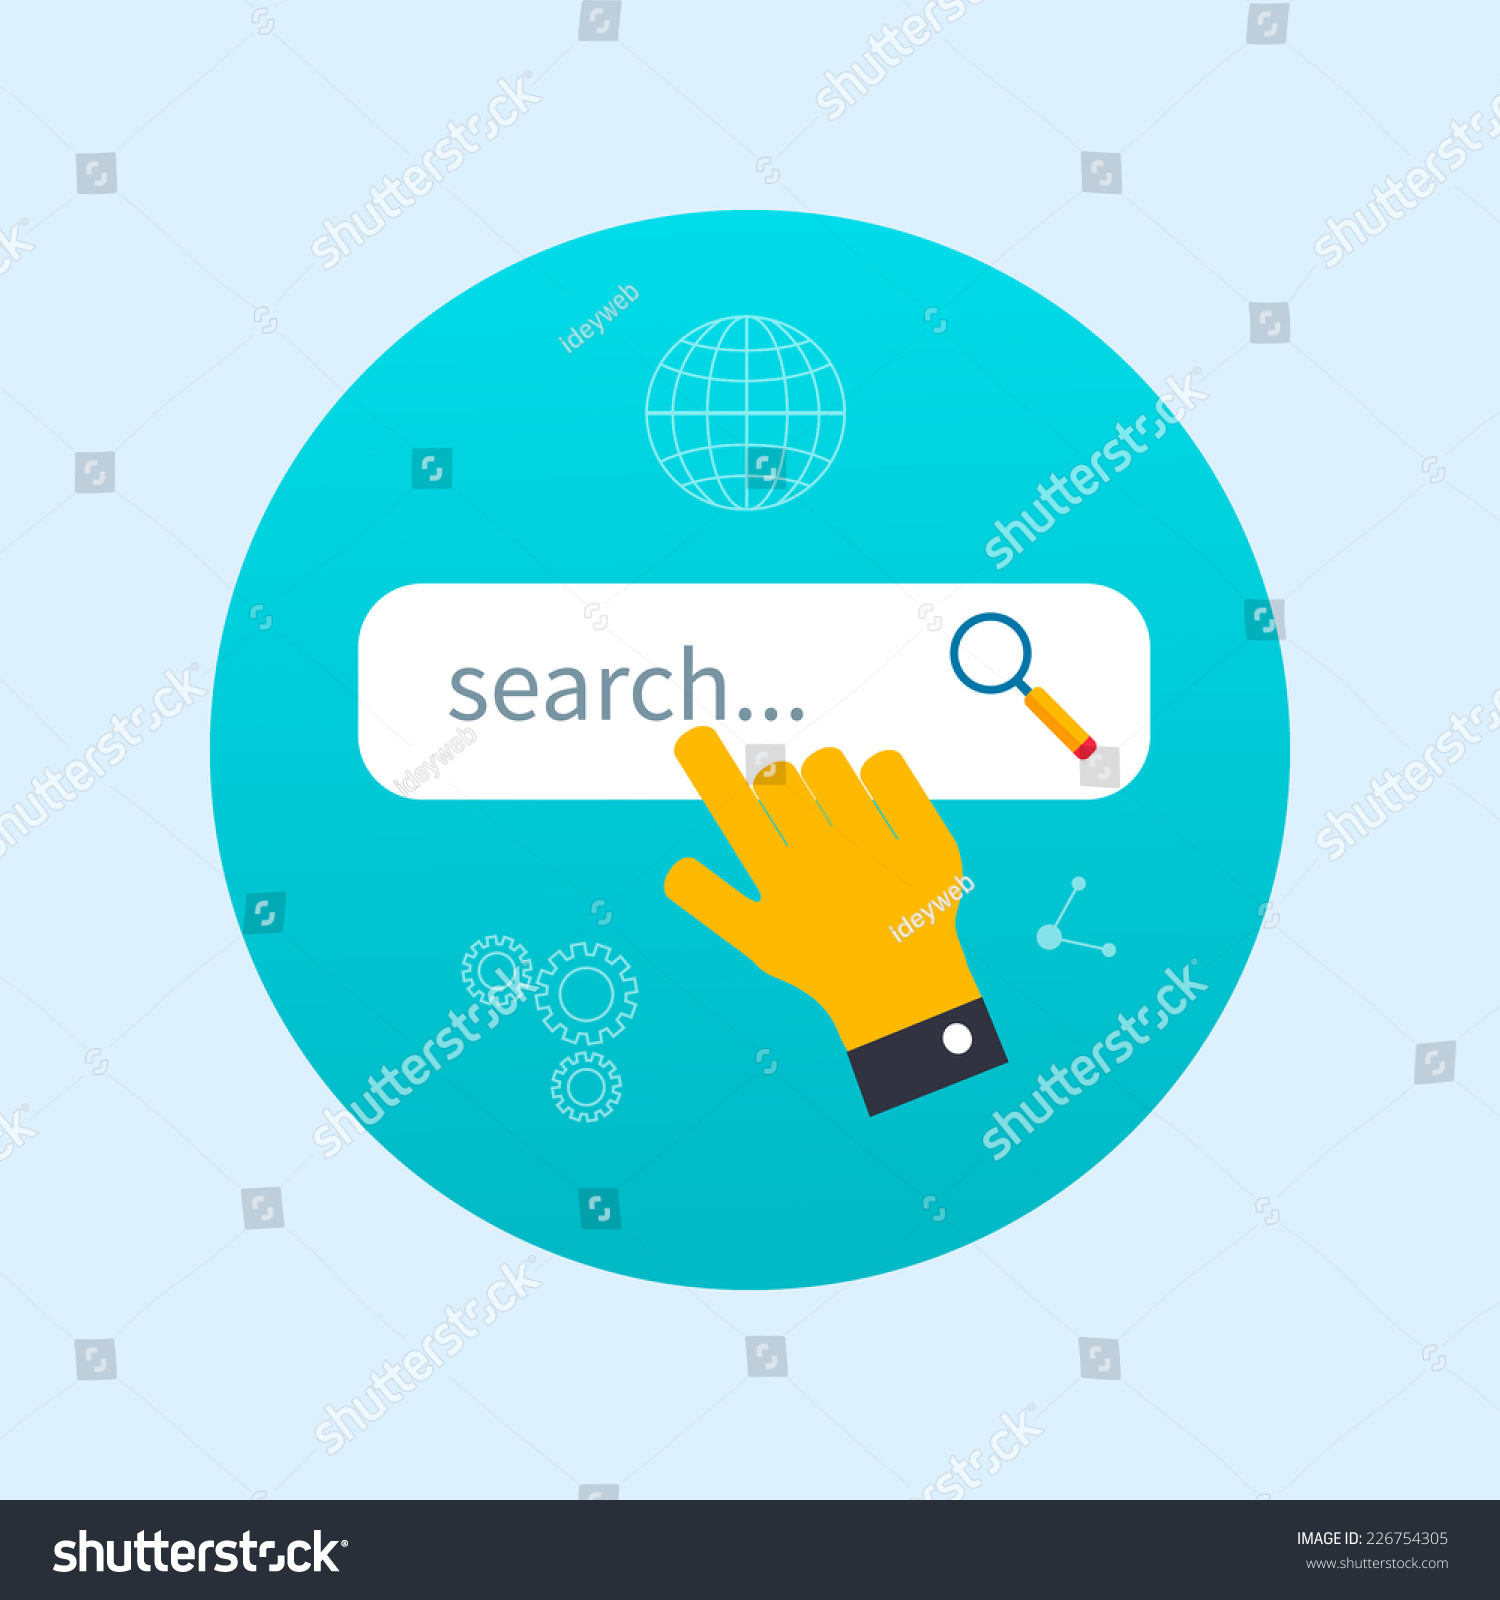 internet search concept with search box - vector modern illustration